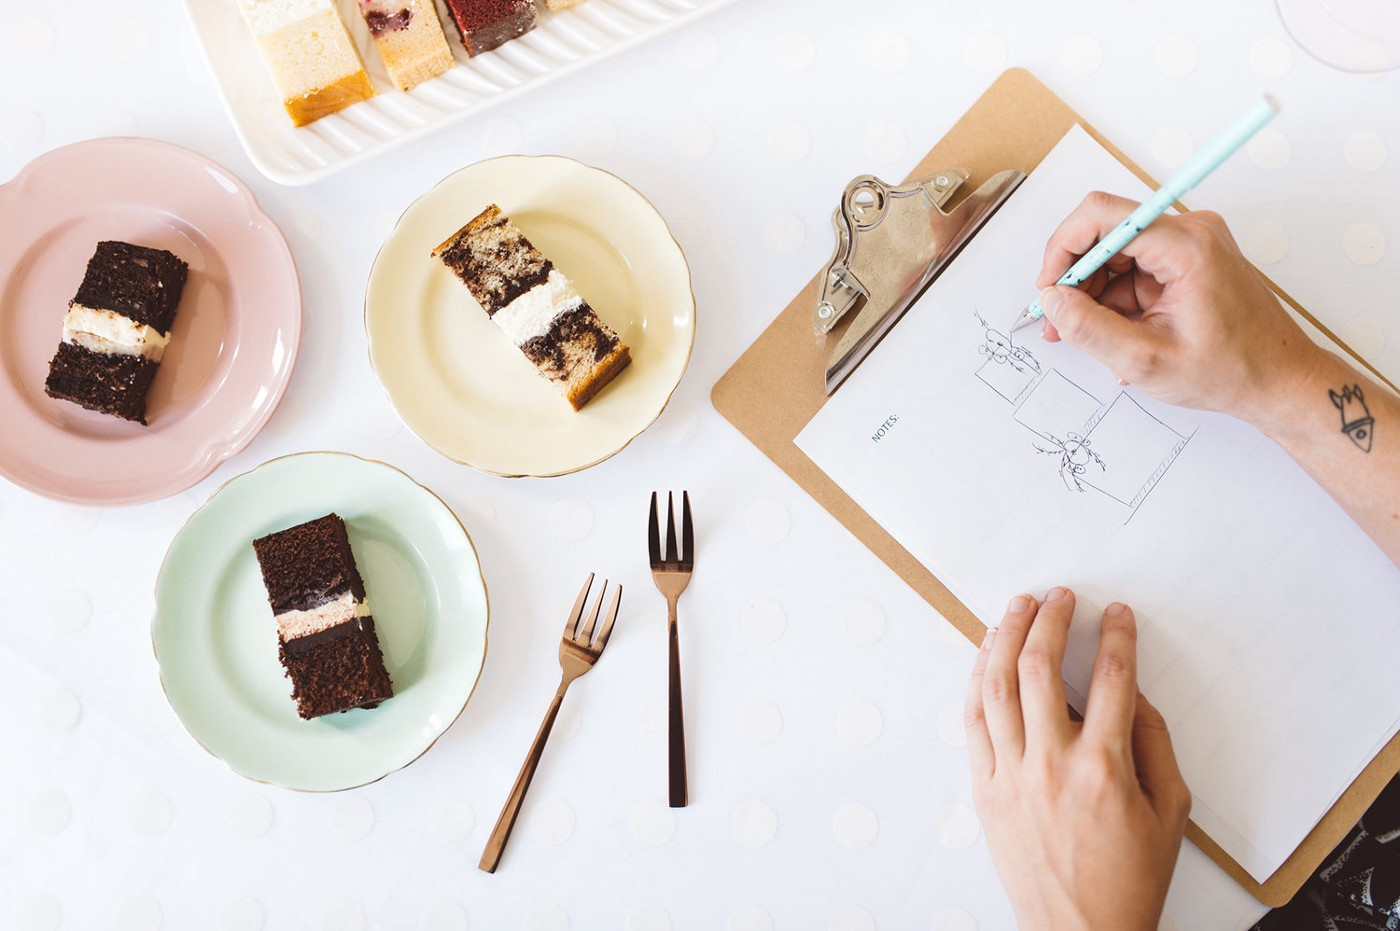 You want to learn to prototype? First, bake a cake